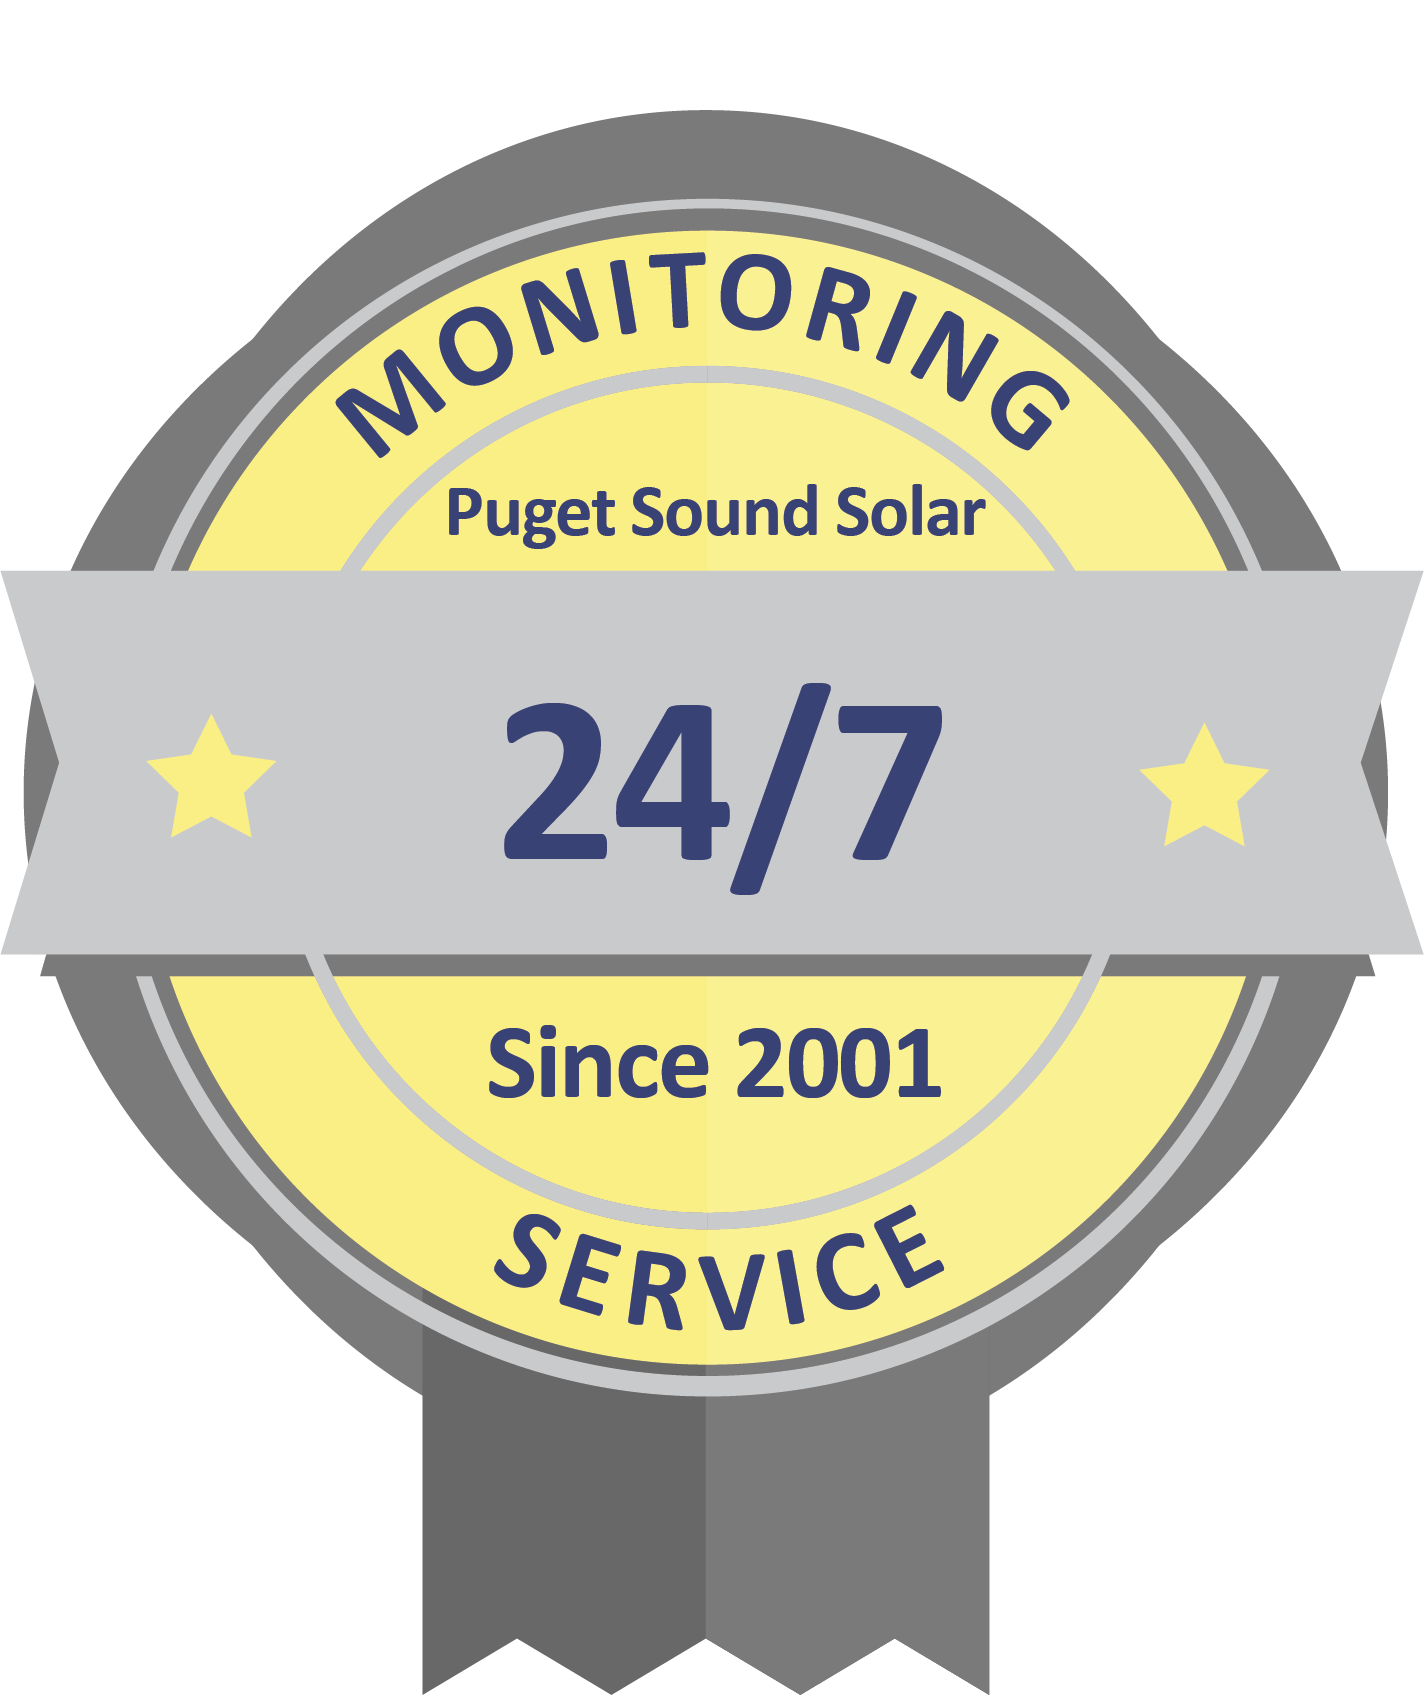 Puget Sound Solar Monitoring and Service Award